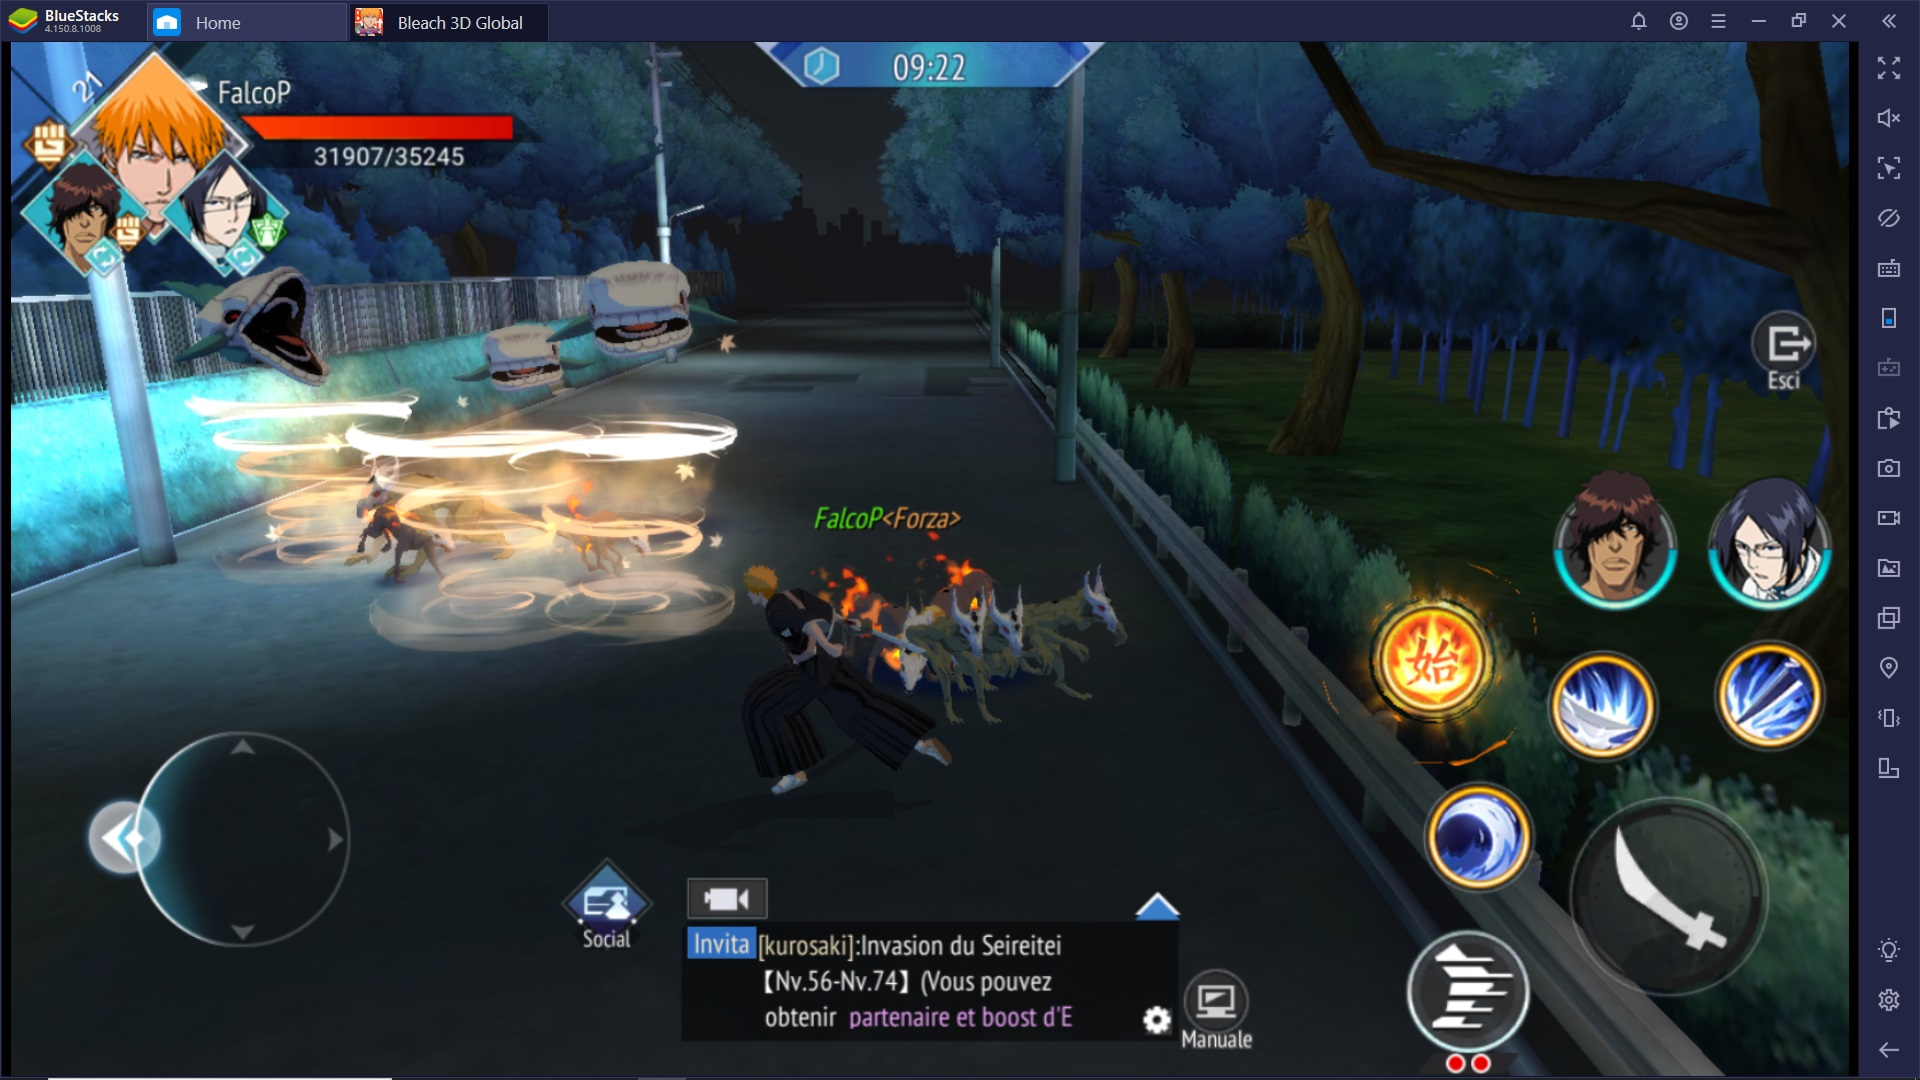 Come Combattere in BLEACH Mobile 3D